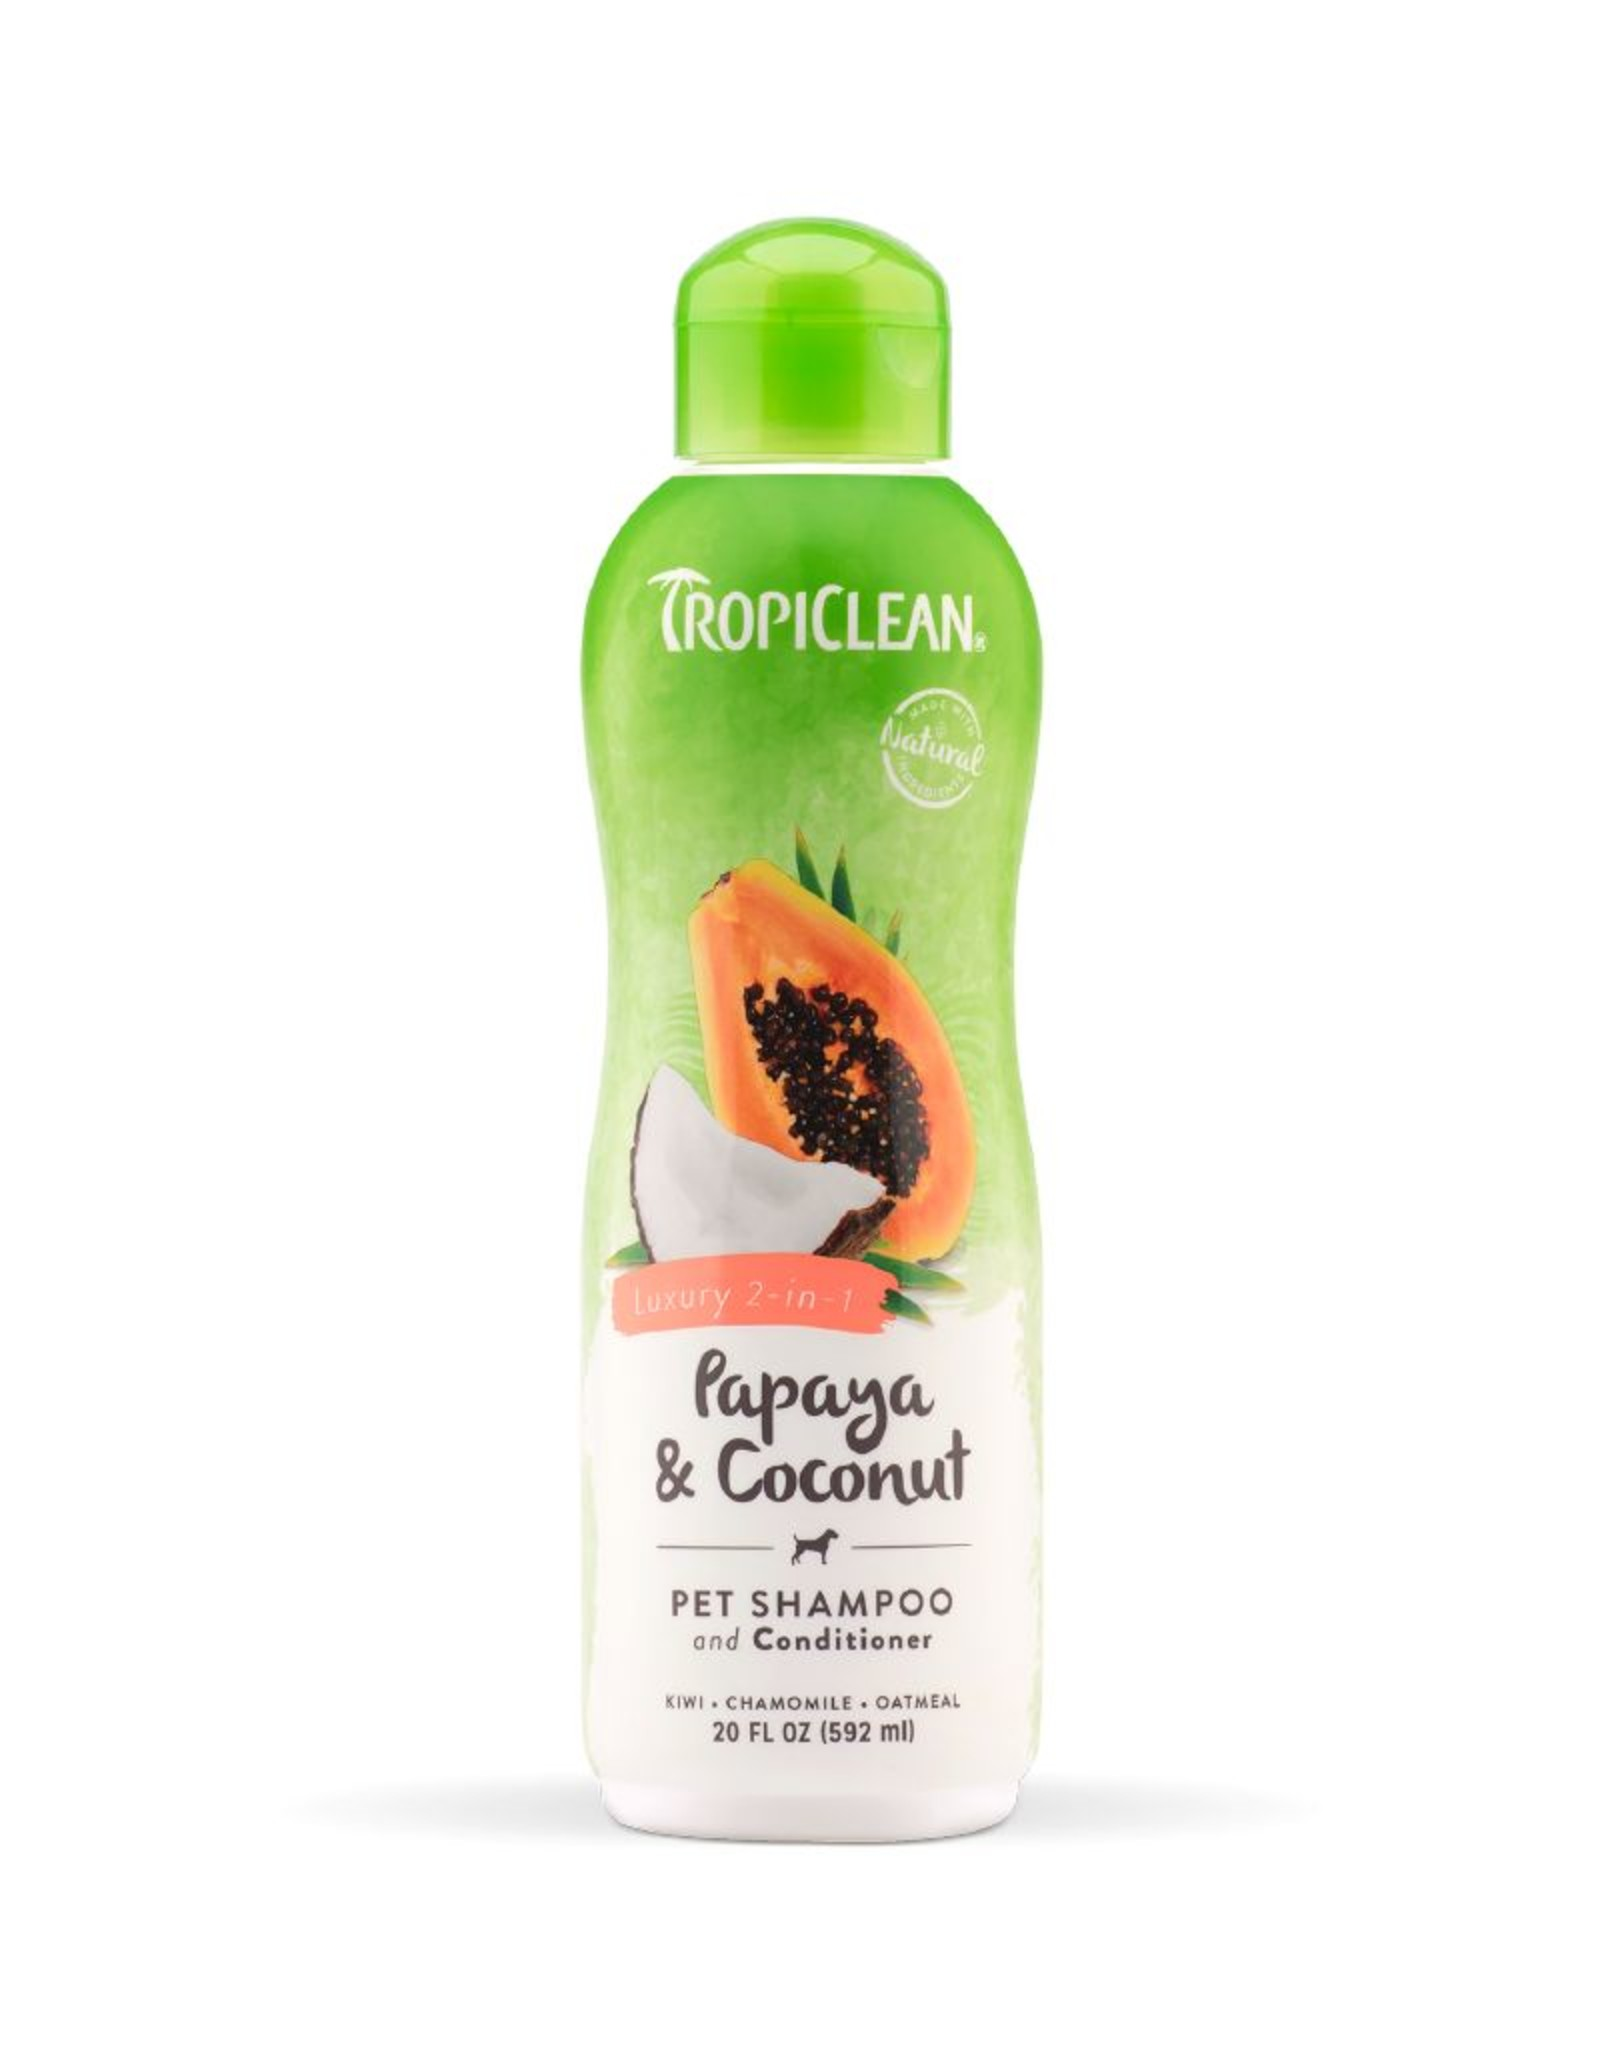 TROPICLEAN TropiClean | Papaya & Coconut Luxury 2-in-1 Conditioning Shampoo